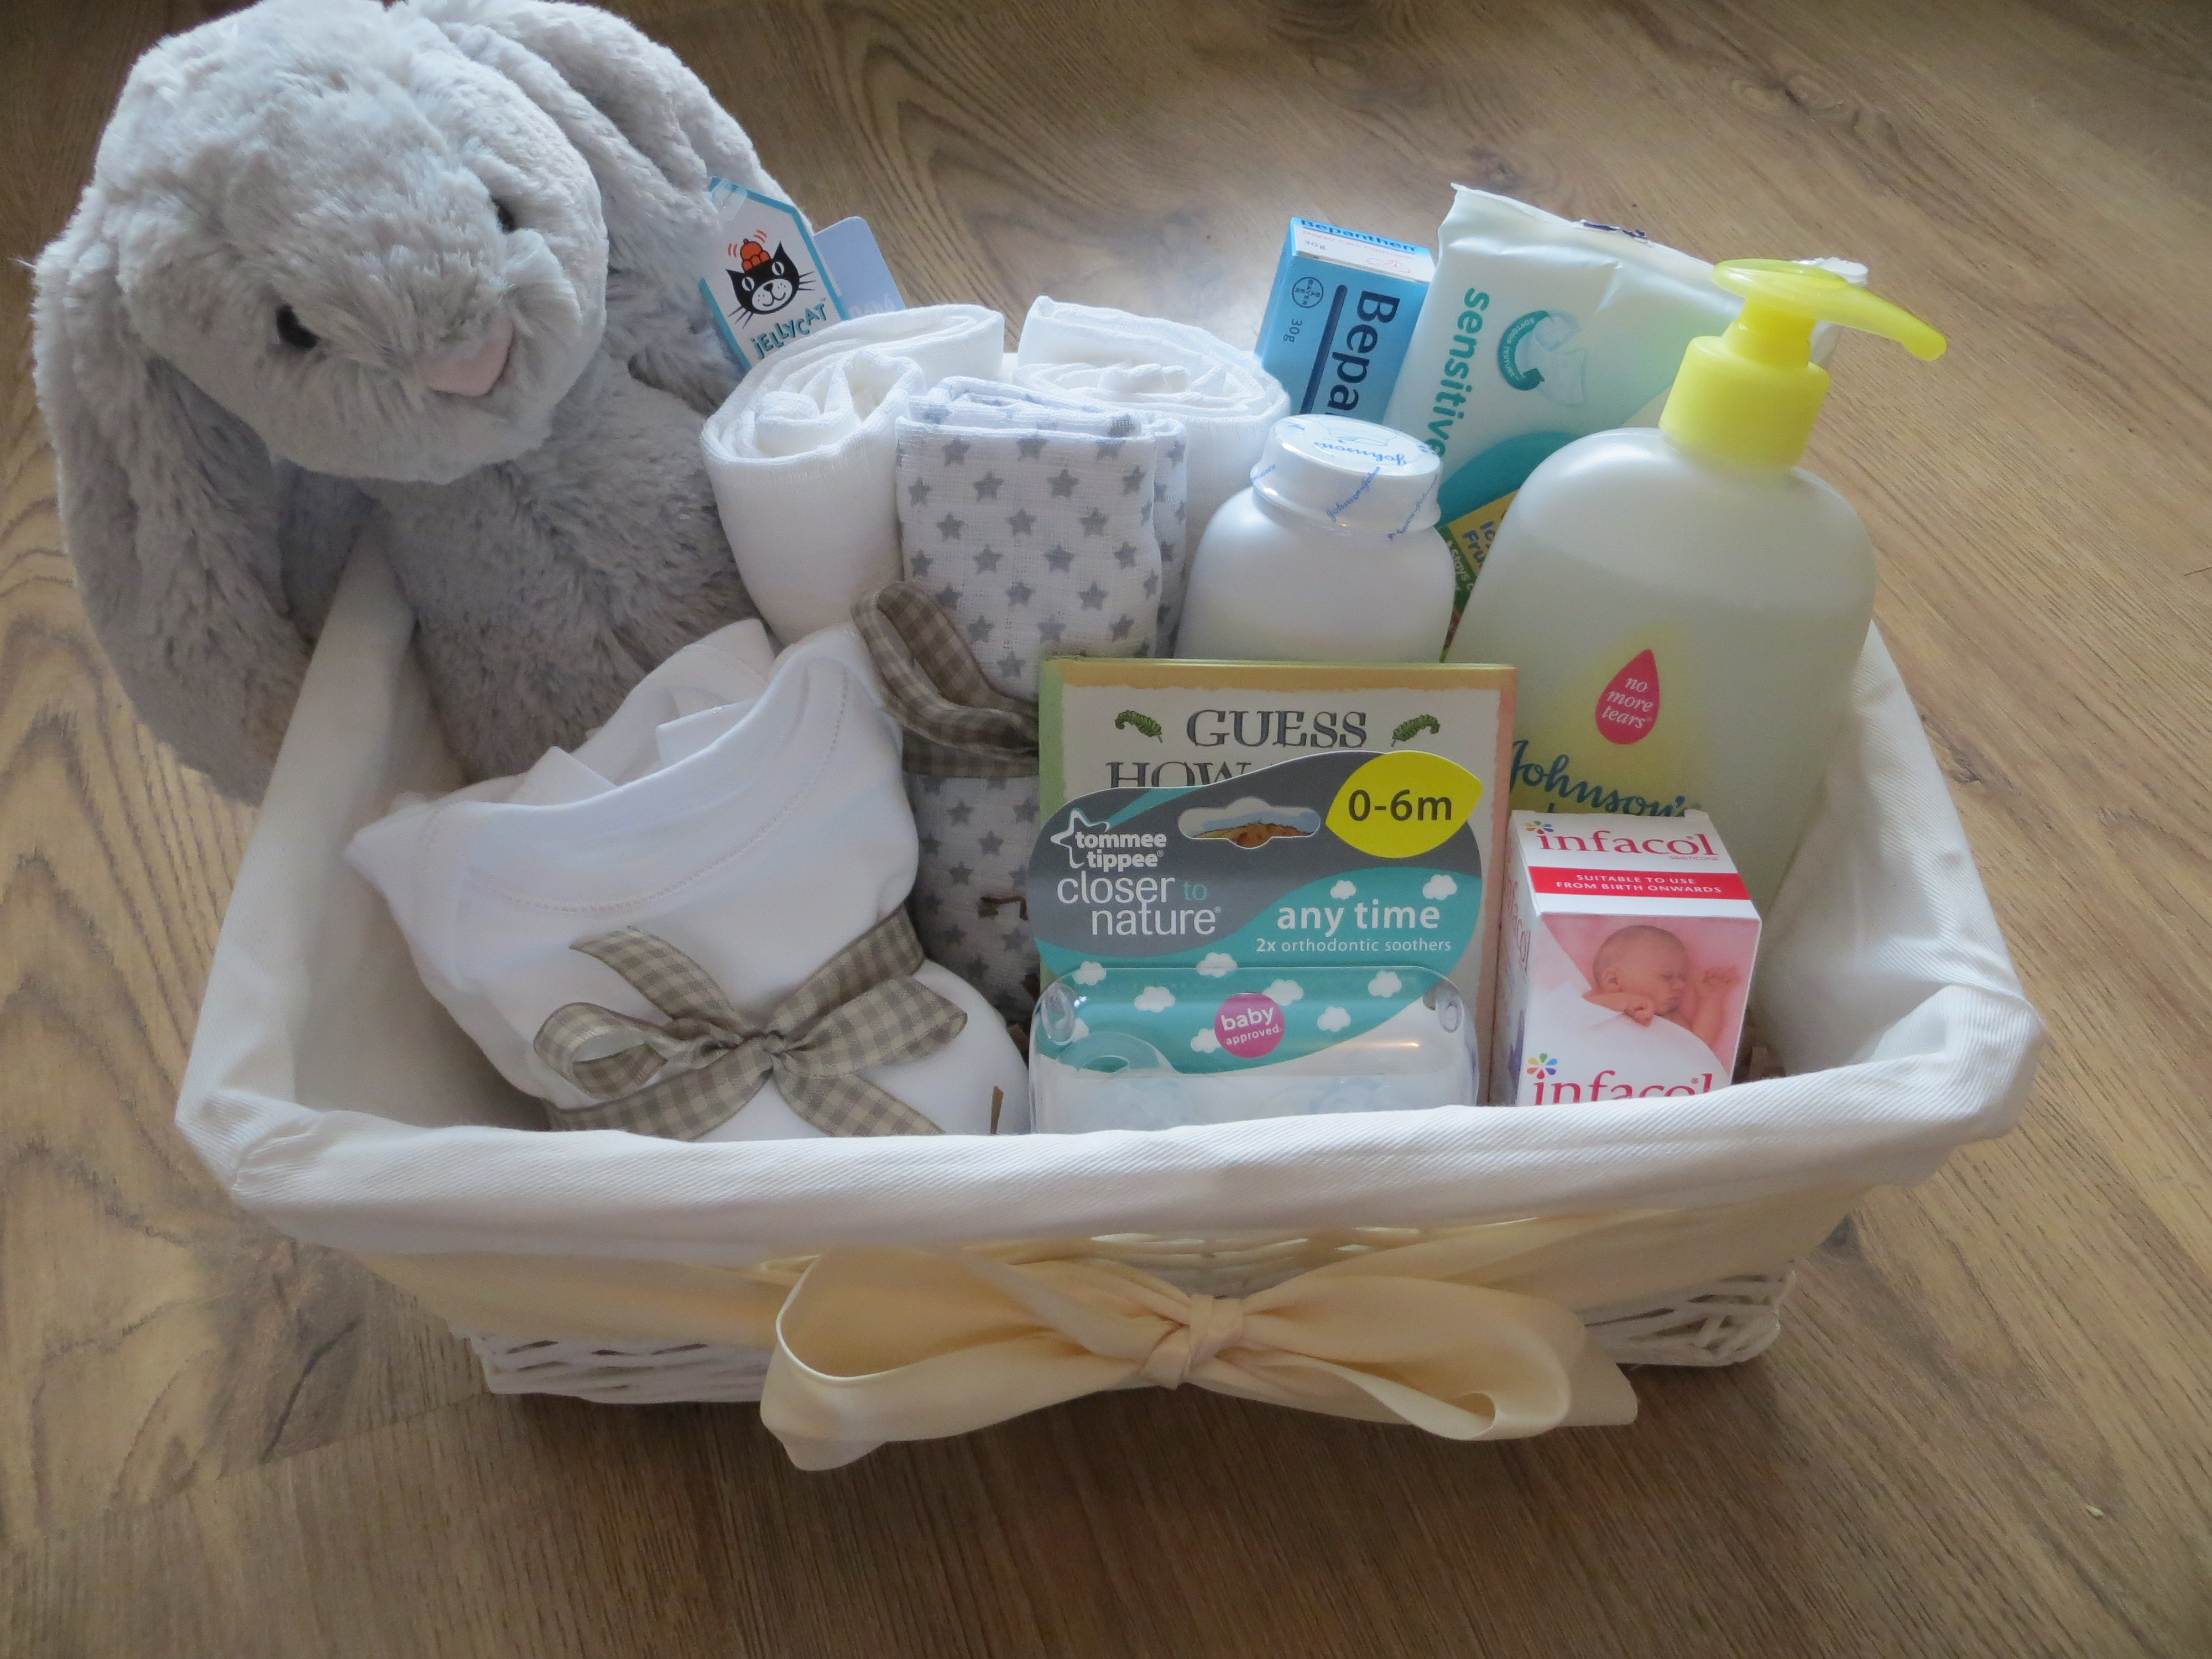 Best ideas about Unisex Baby Gift Ideas . Save or Pin DIY gender neutral baby hamper Now.